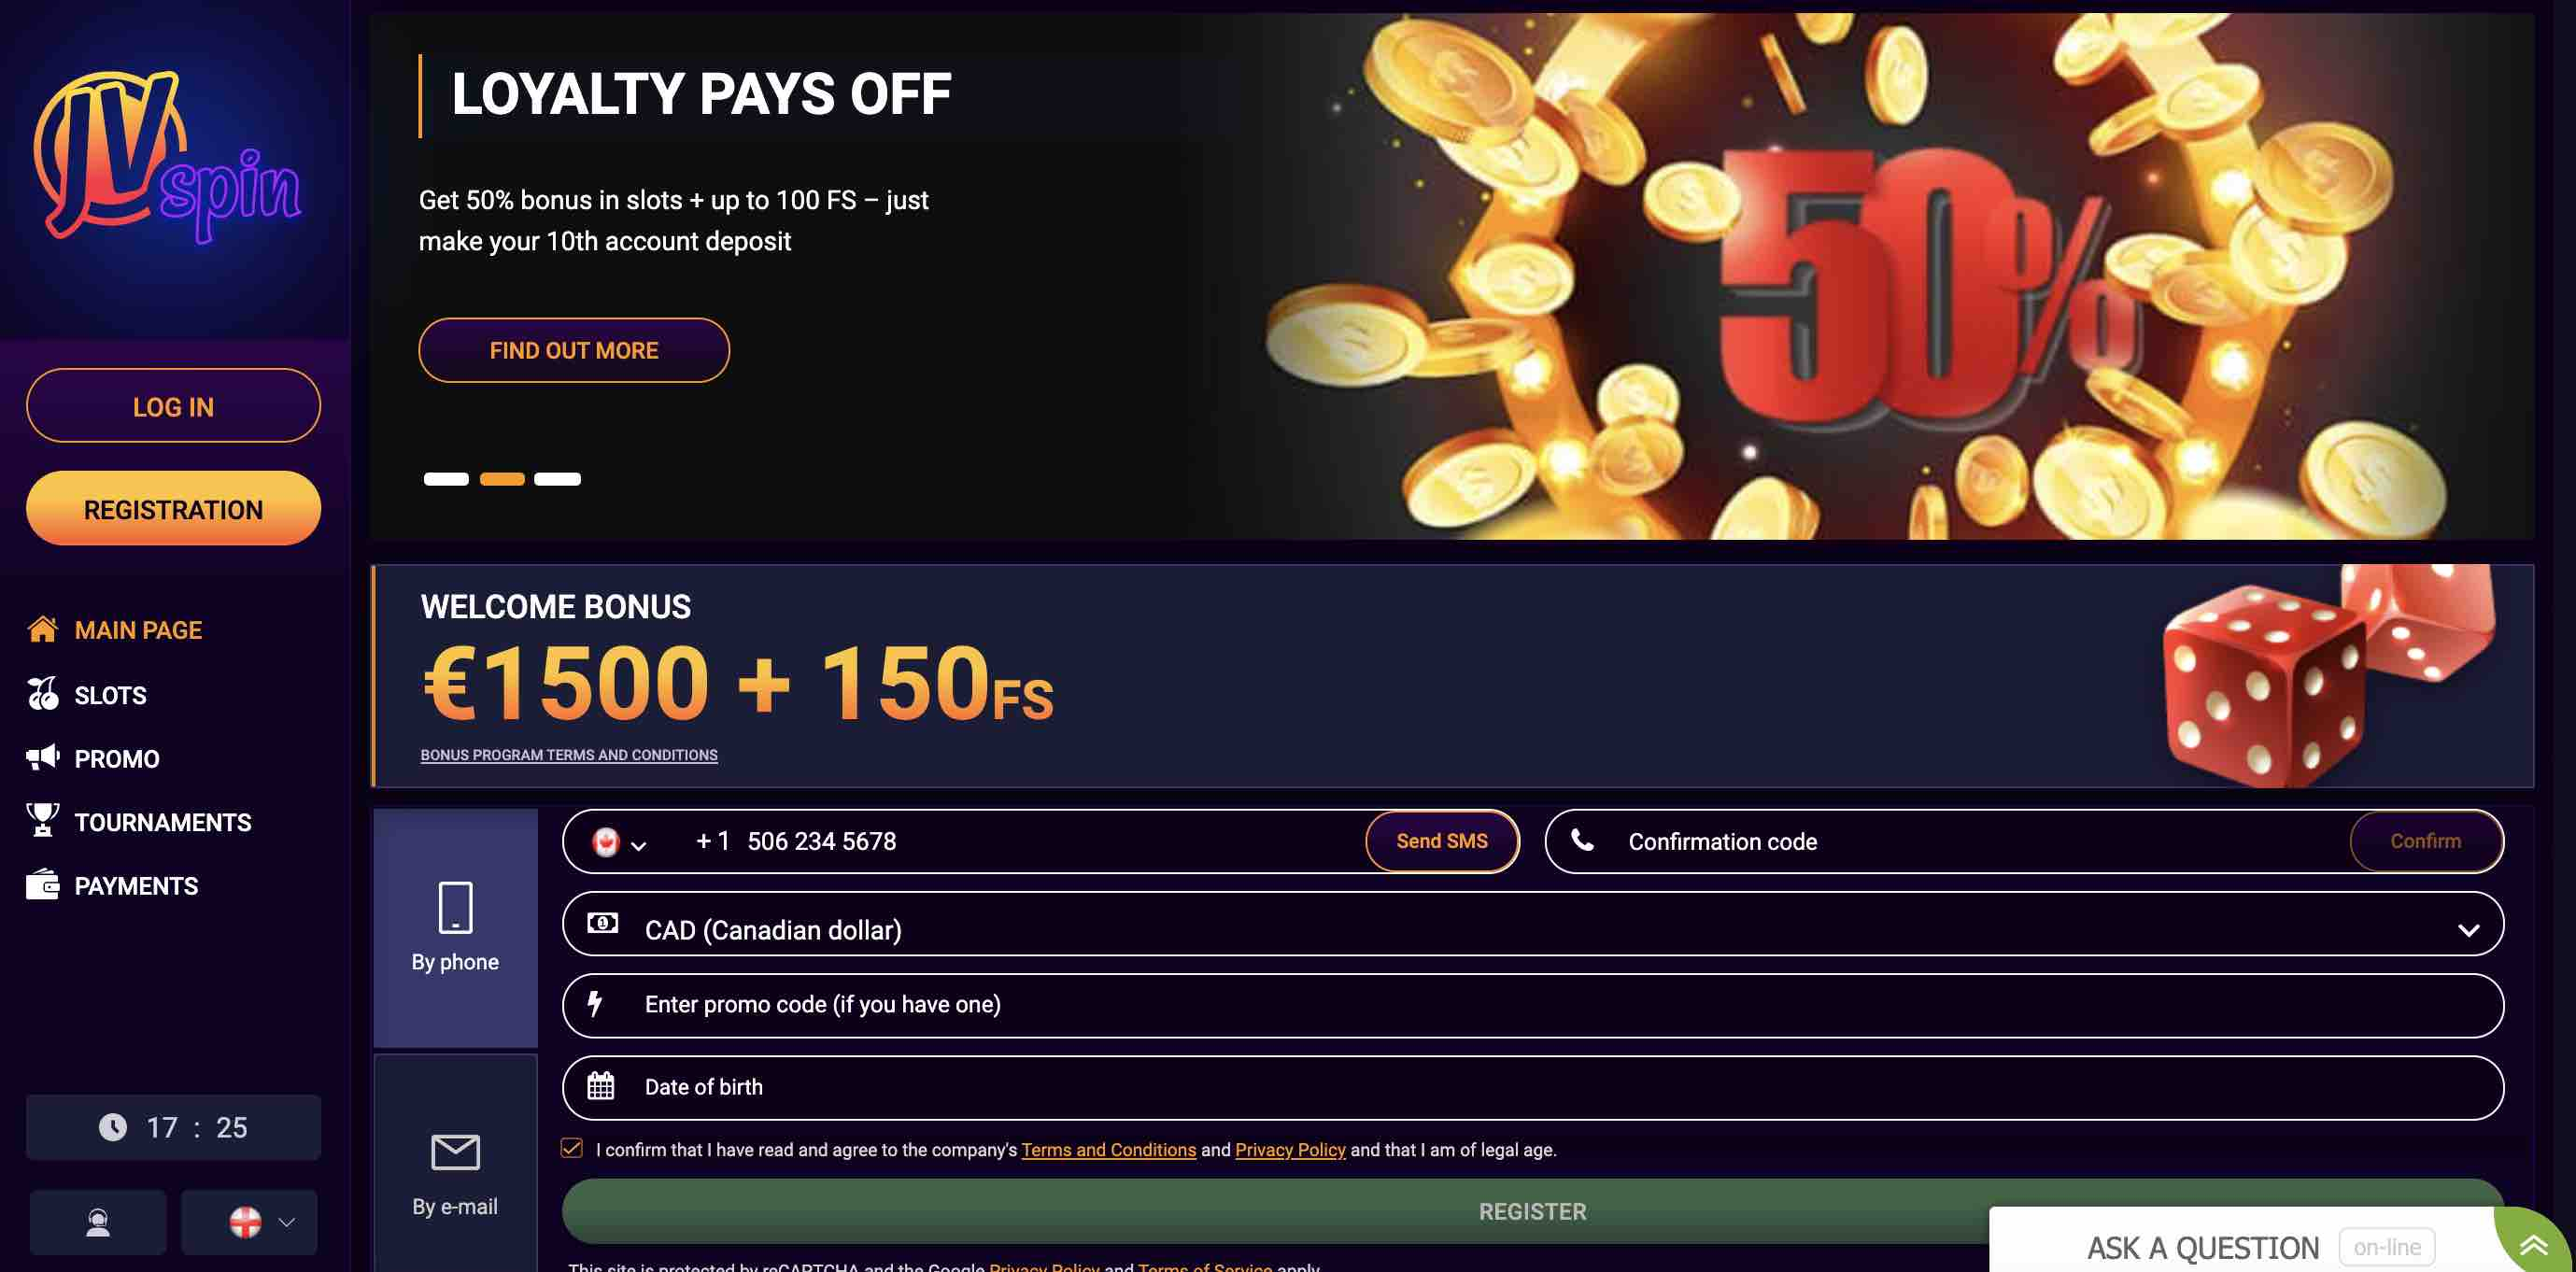 Loyalty Promotions at JV Spin